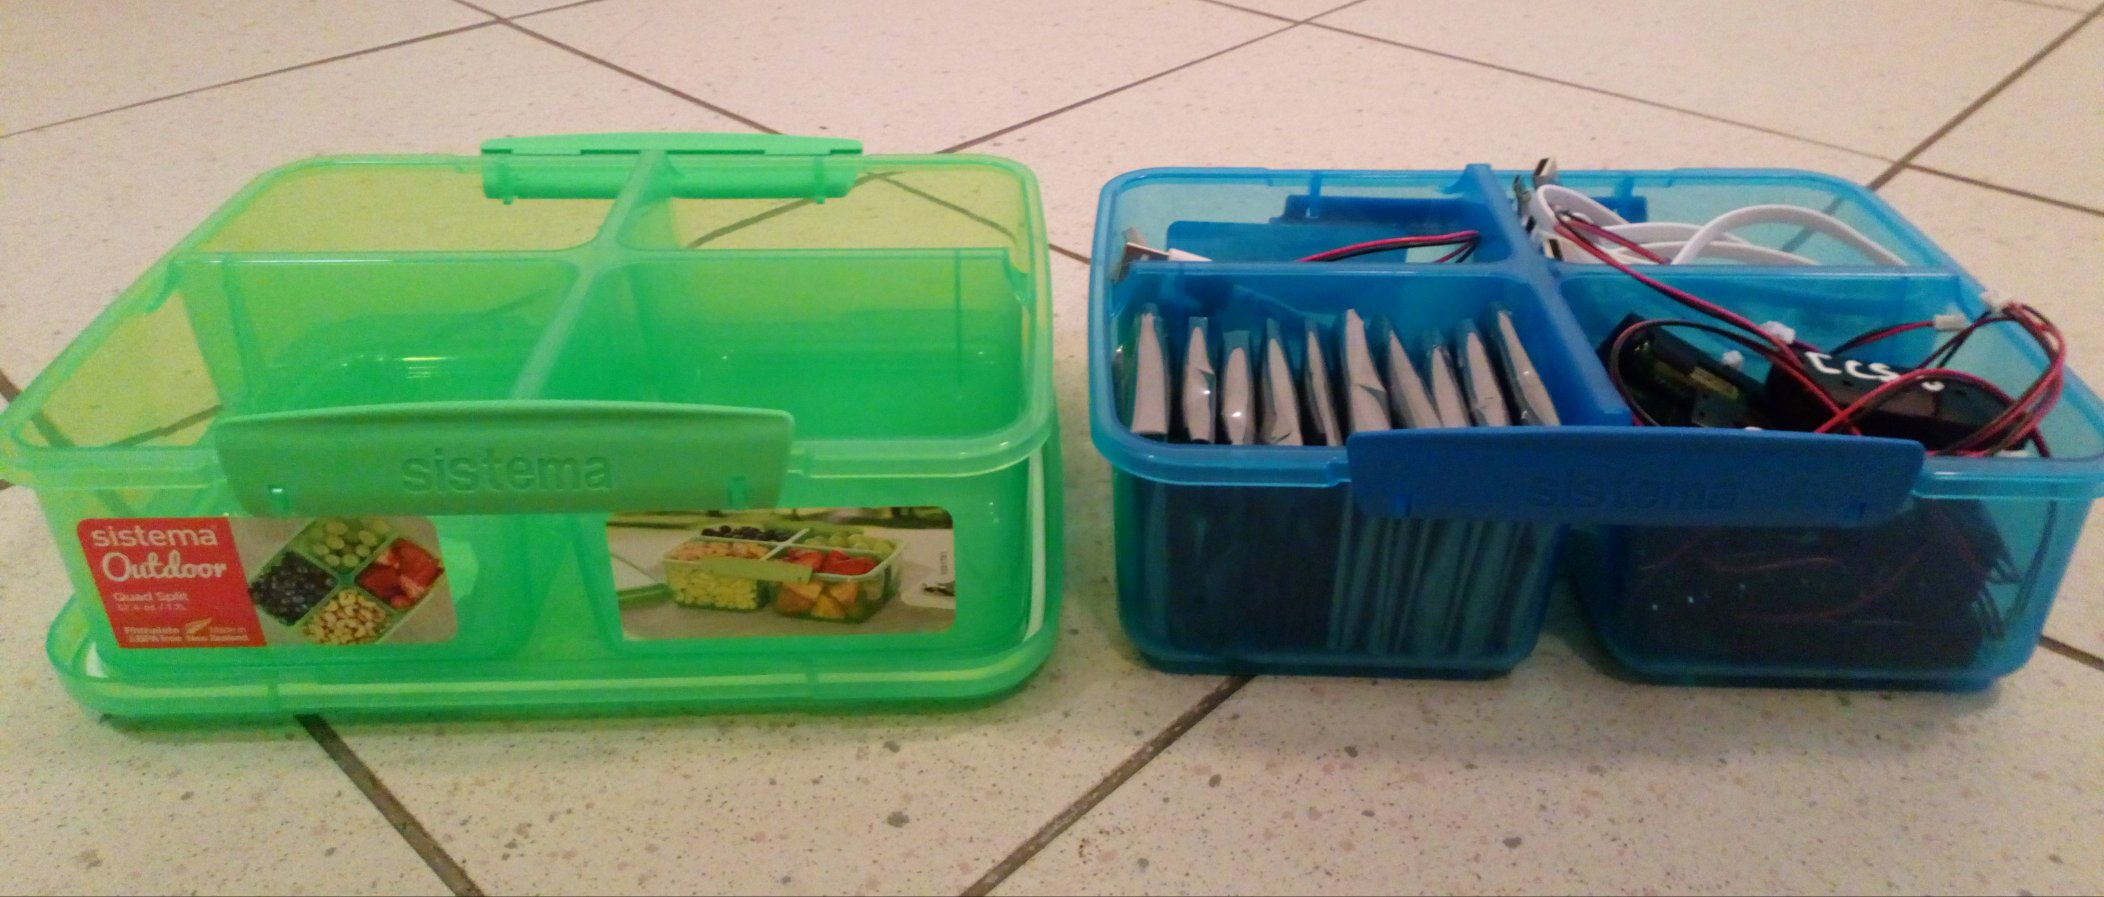 tupperware food storage boxes with micro:bits